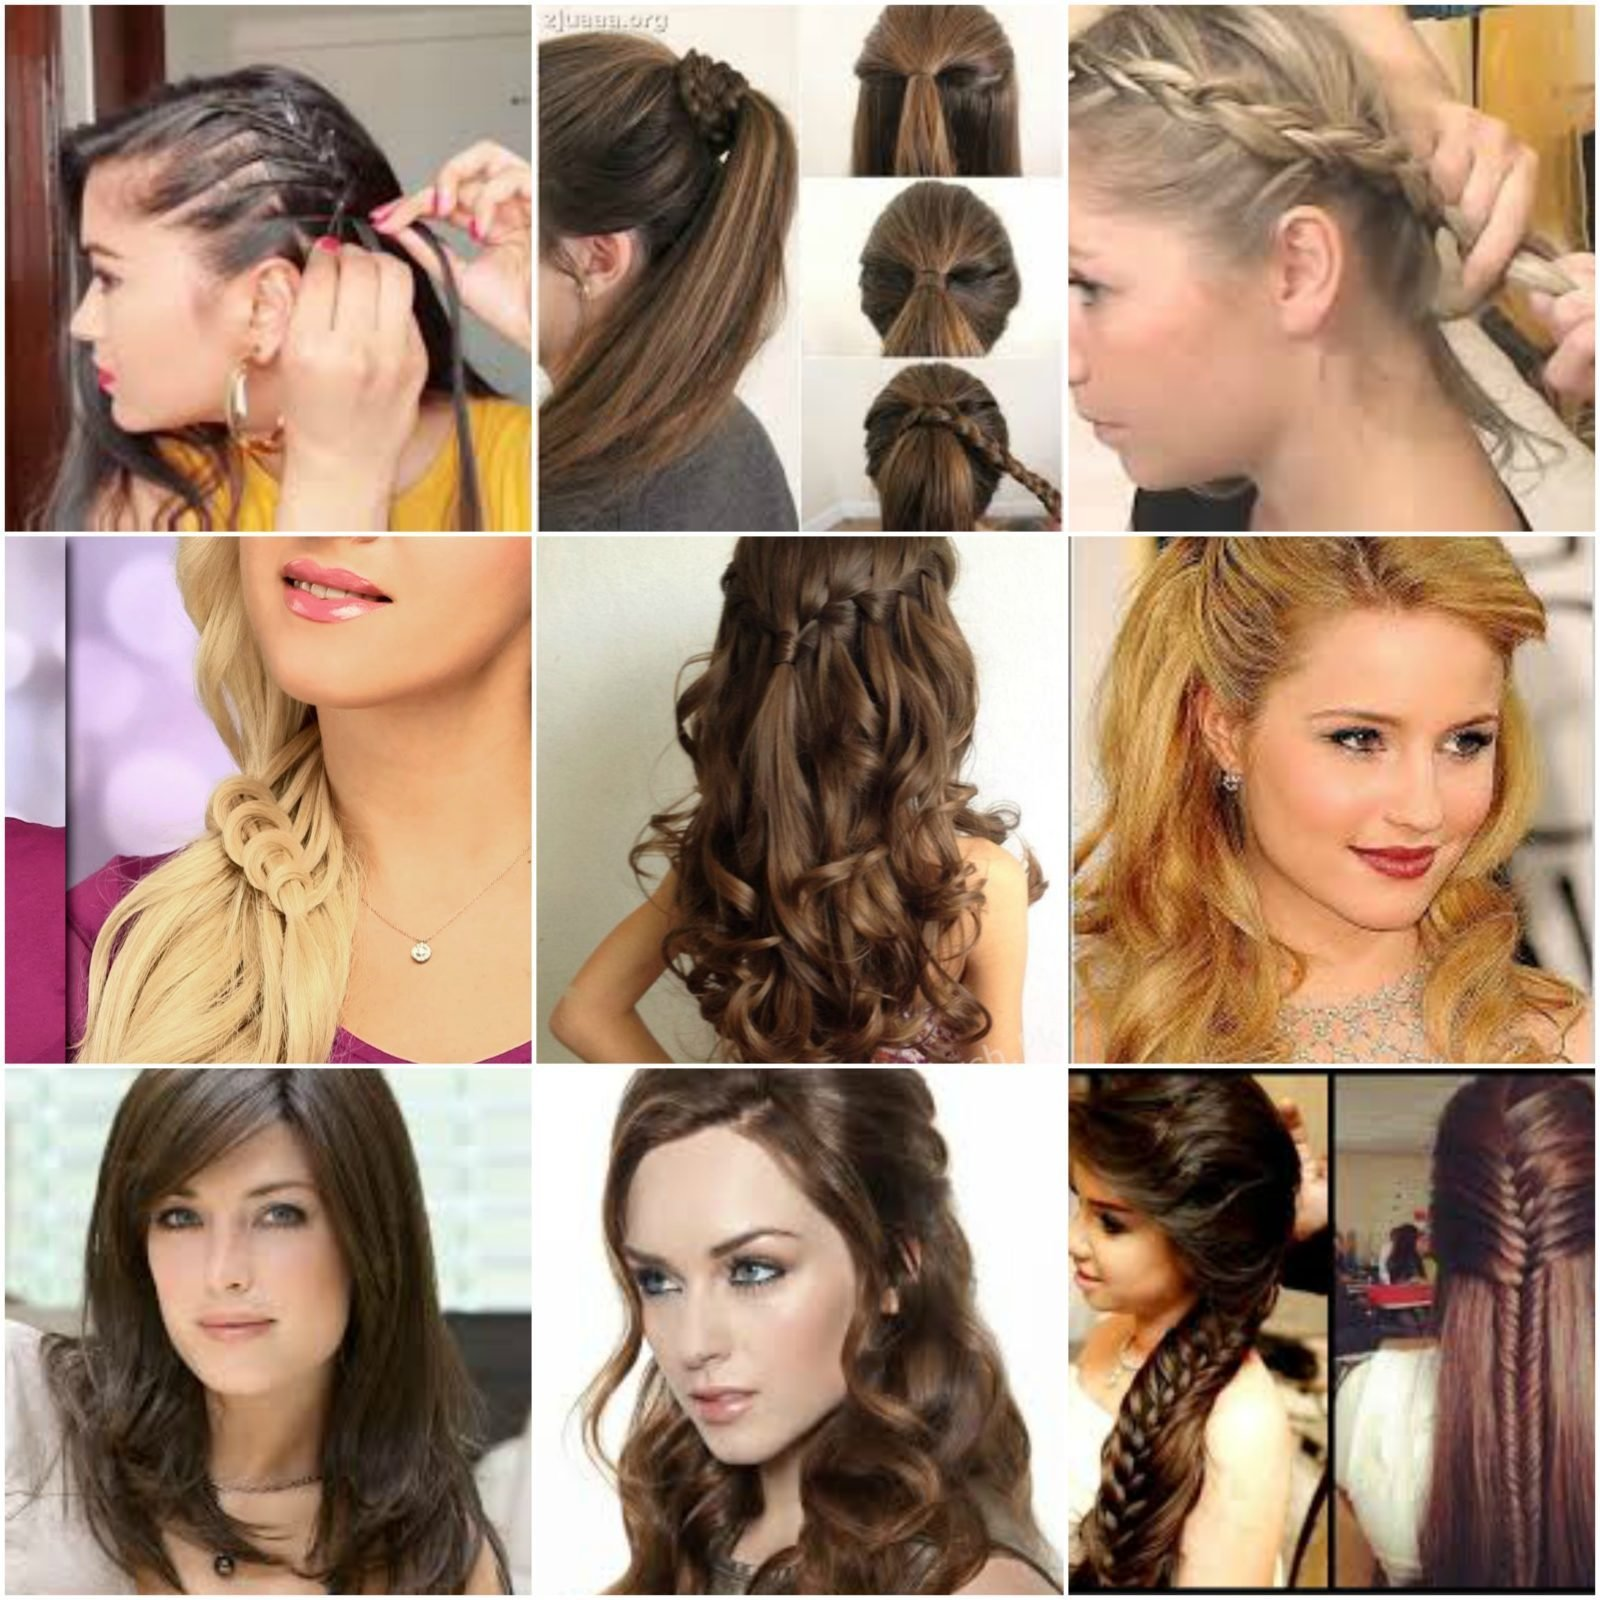 The Best 100 Easy Hairstyles For Medium Hair For Party In 2019 Pictures